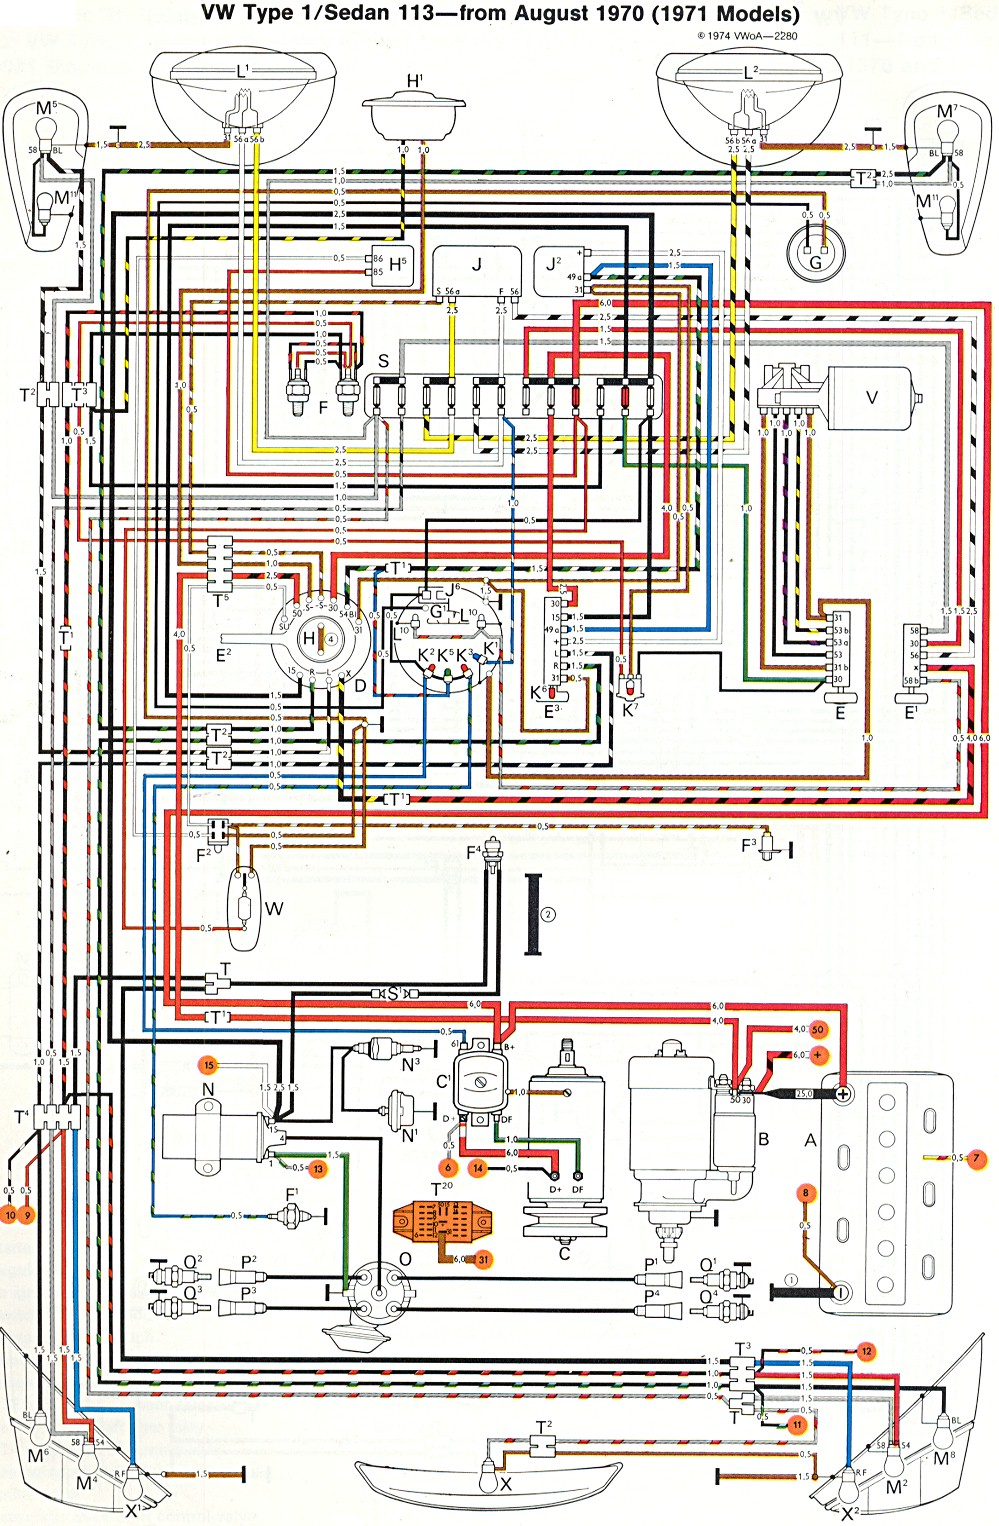 bug_super_71 1971 super beetle wiring diagram thegoldenbug com vw wiring diagrams at gsmx.co